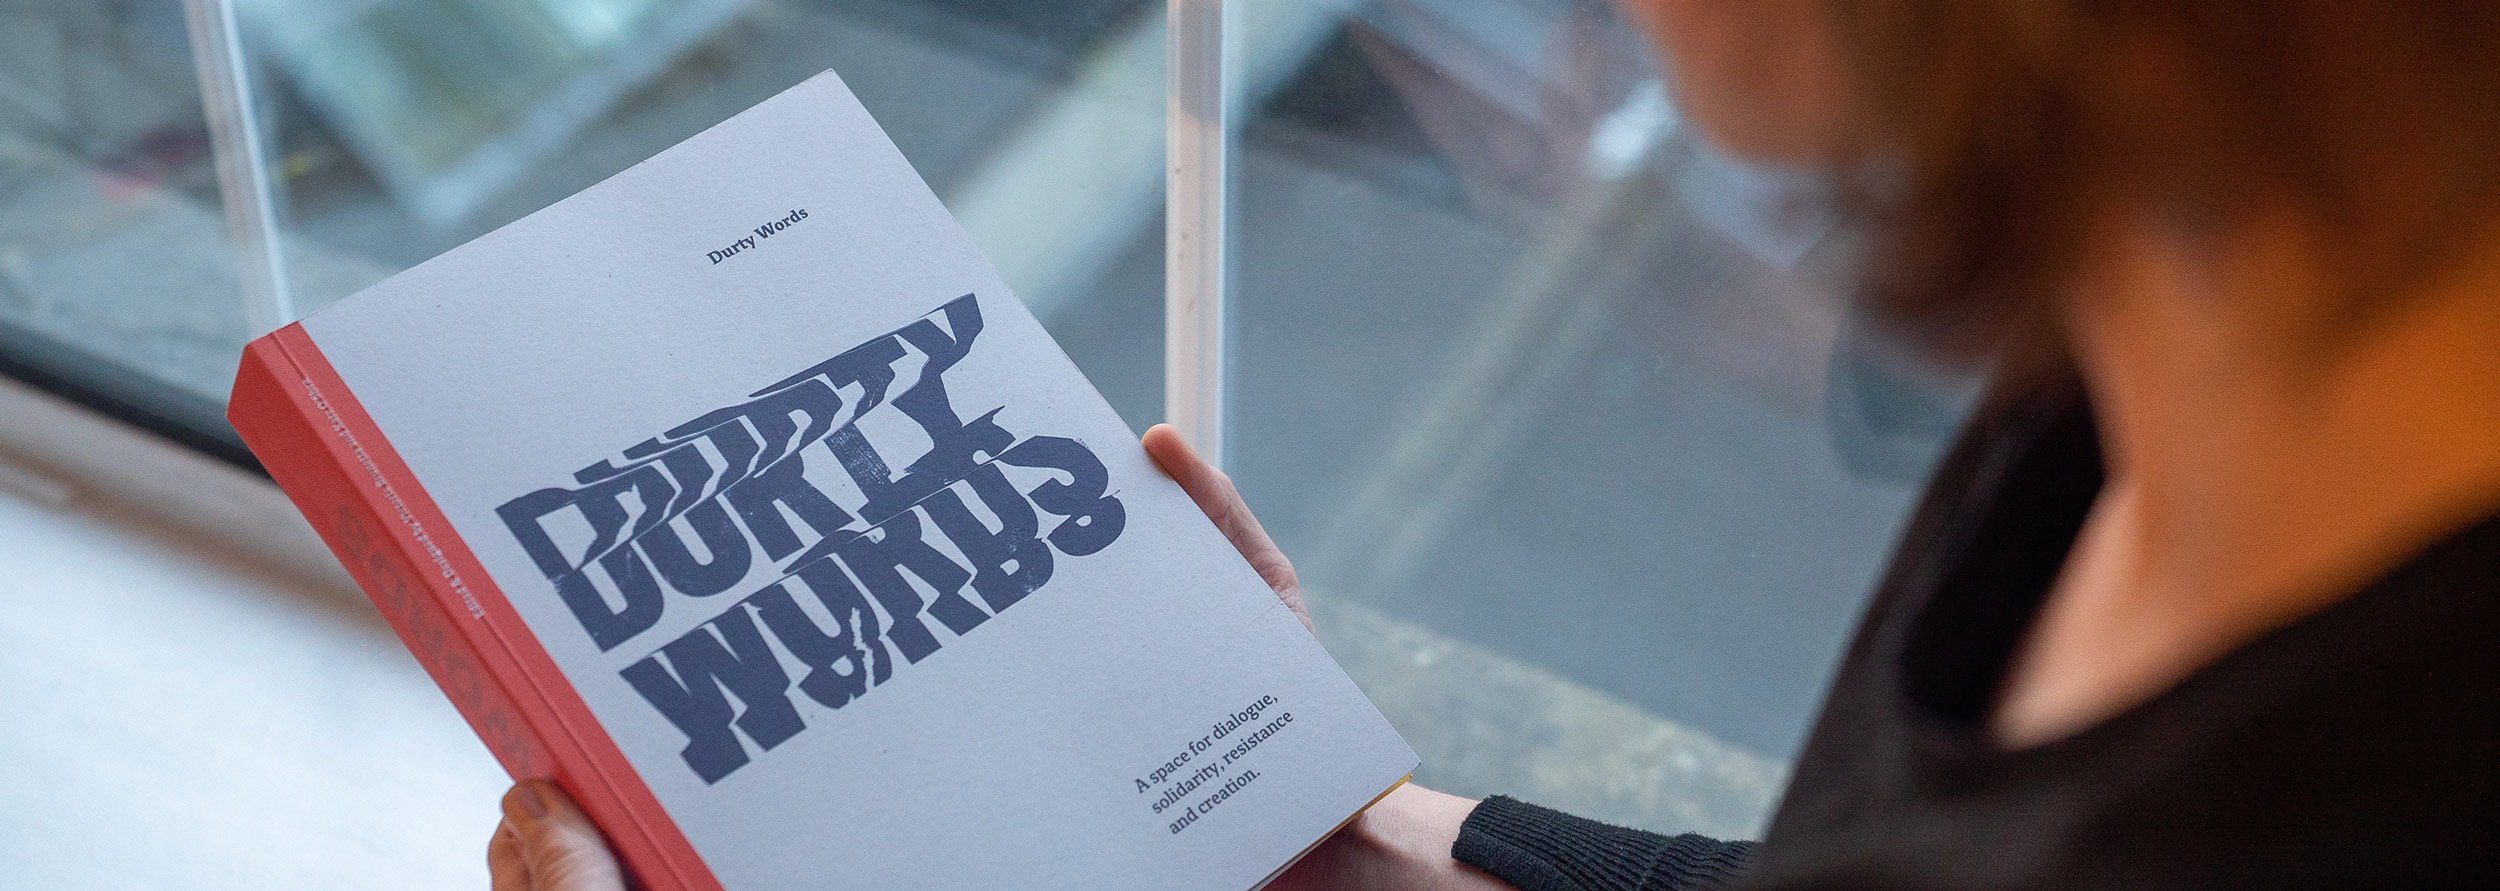 Durty Words Book Graphic Design